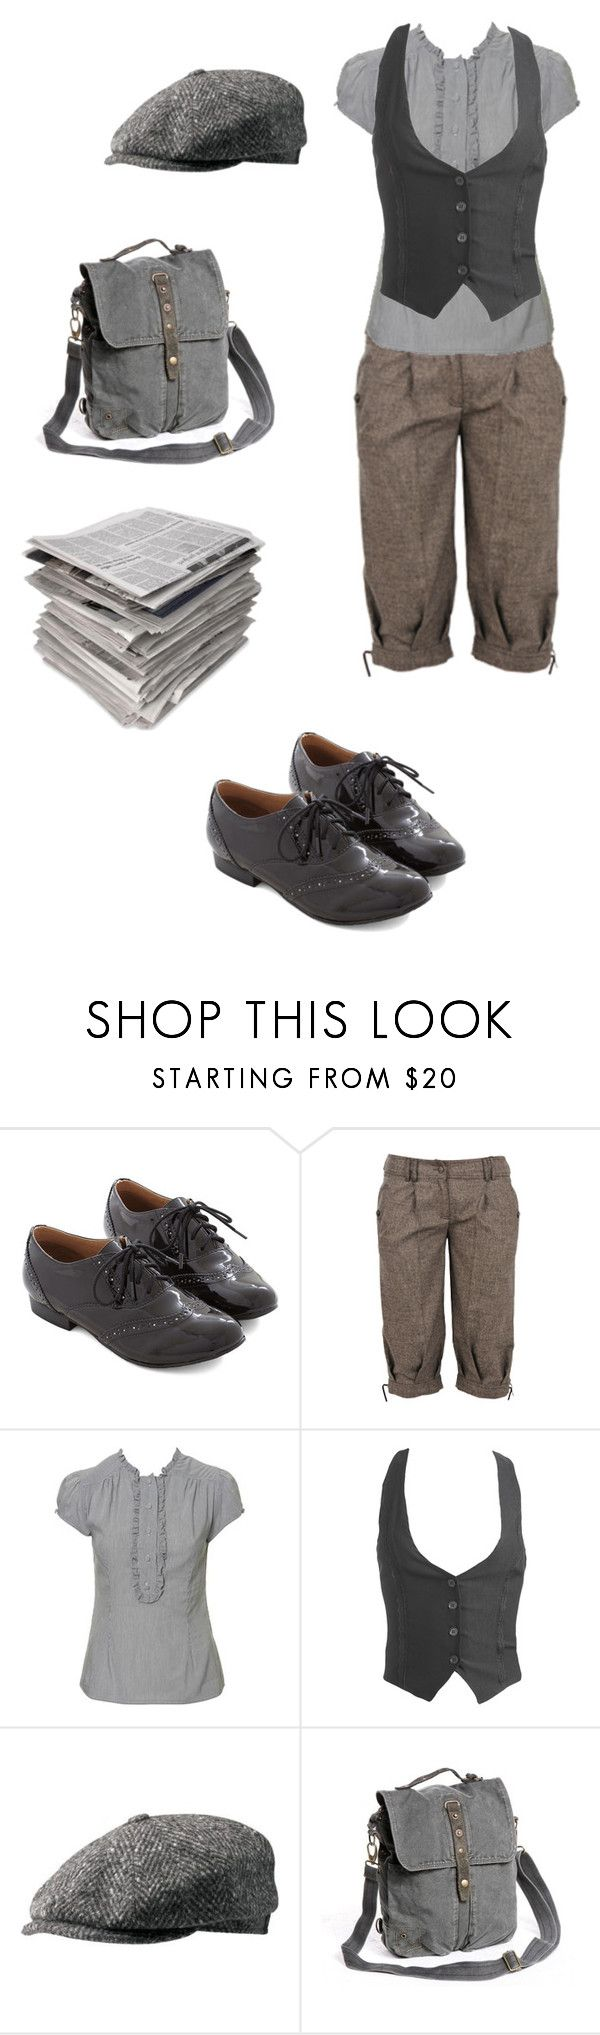 """Strike"" by rebellious-ingenue ❤ liked on Polyvore featuring Just Cavalli, Topshop, Wet Seal and newsies"